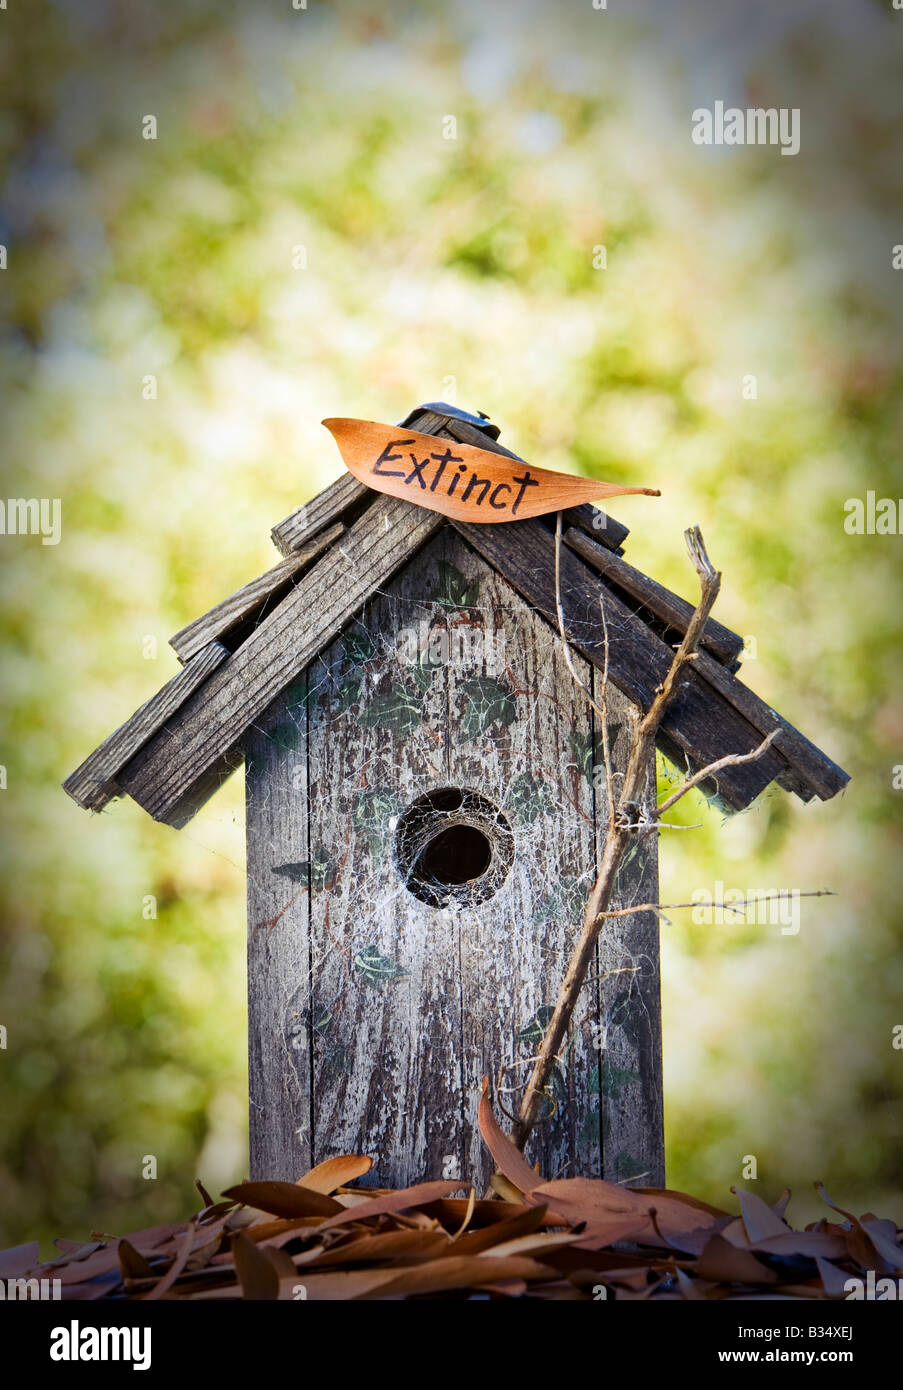 birdhouse with extinct sign - Stock Image